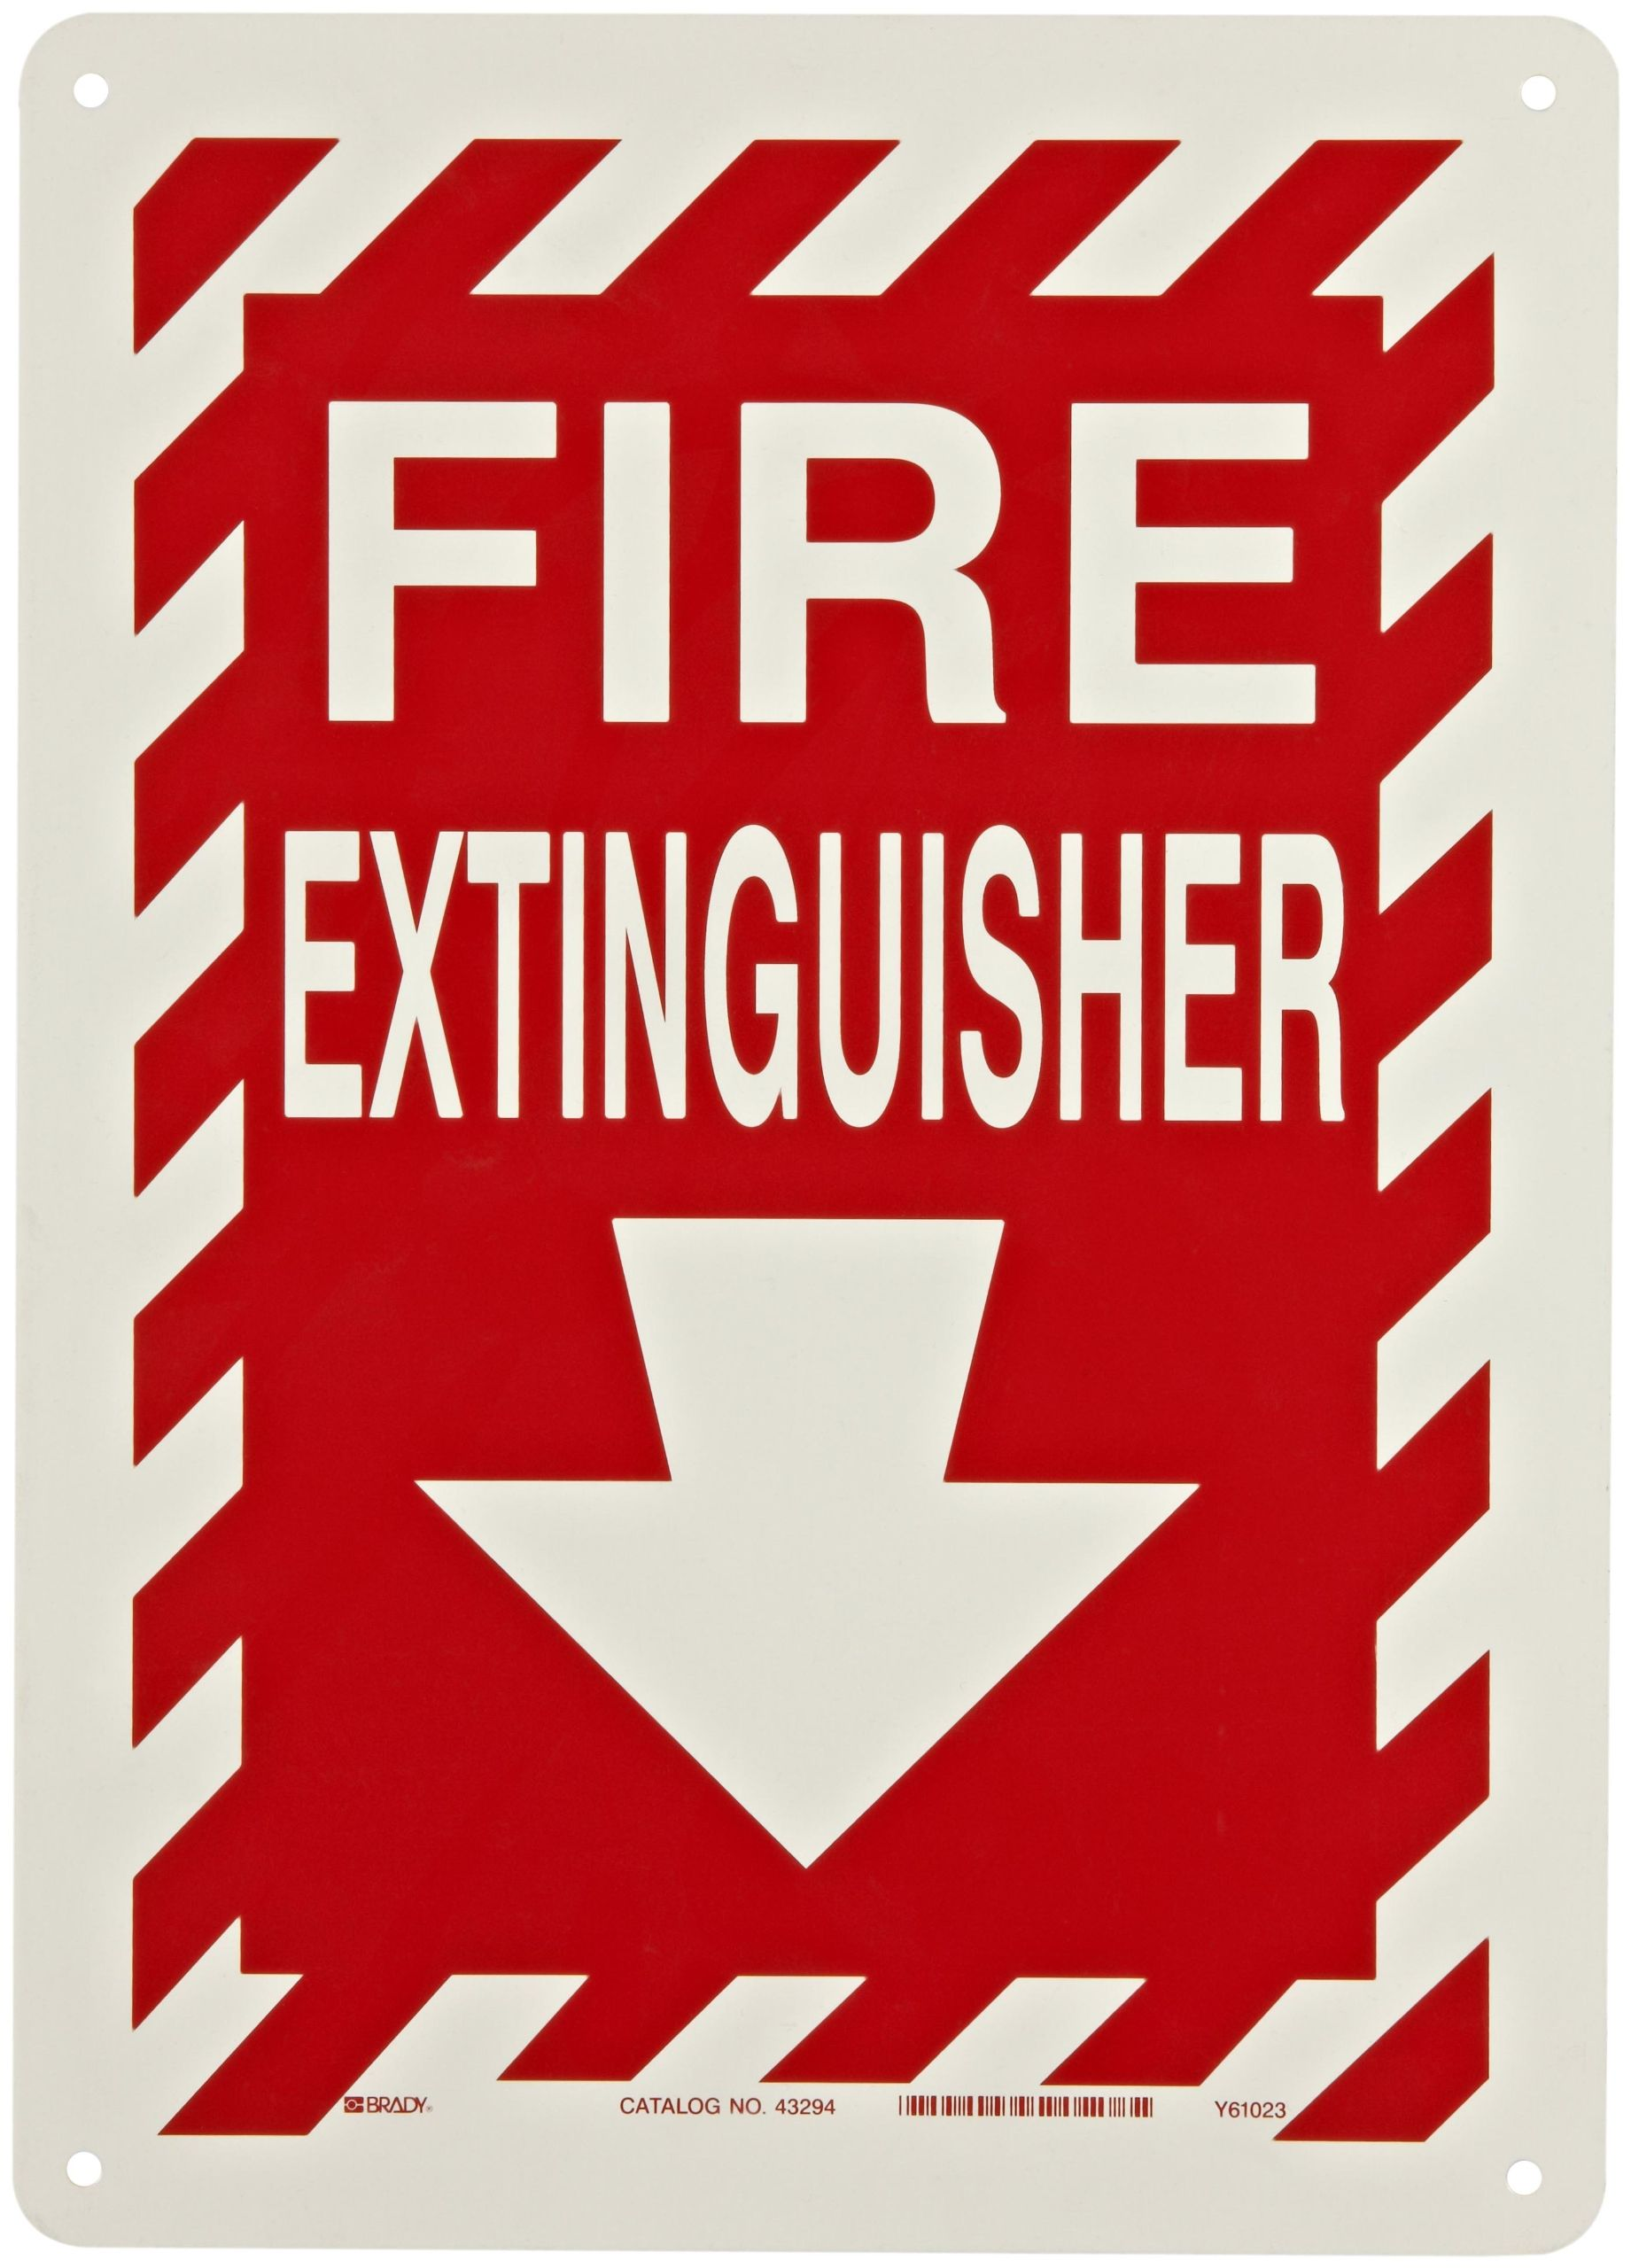 fire extinguisher sign Google Search Fire extinguisher